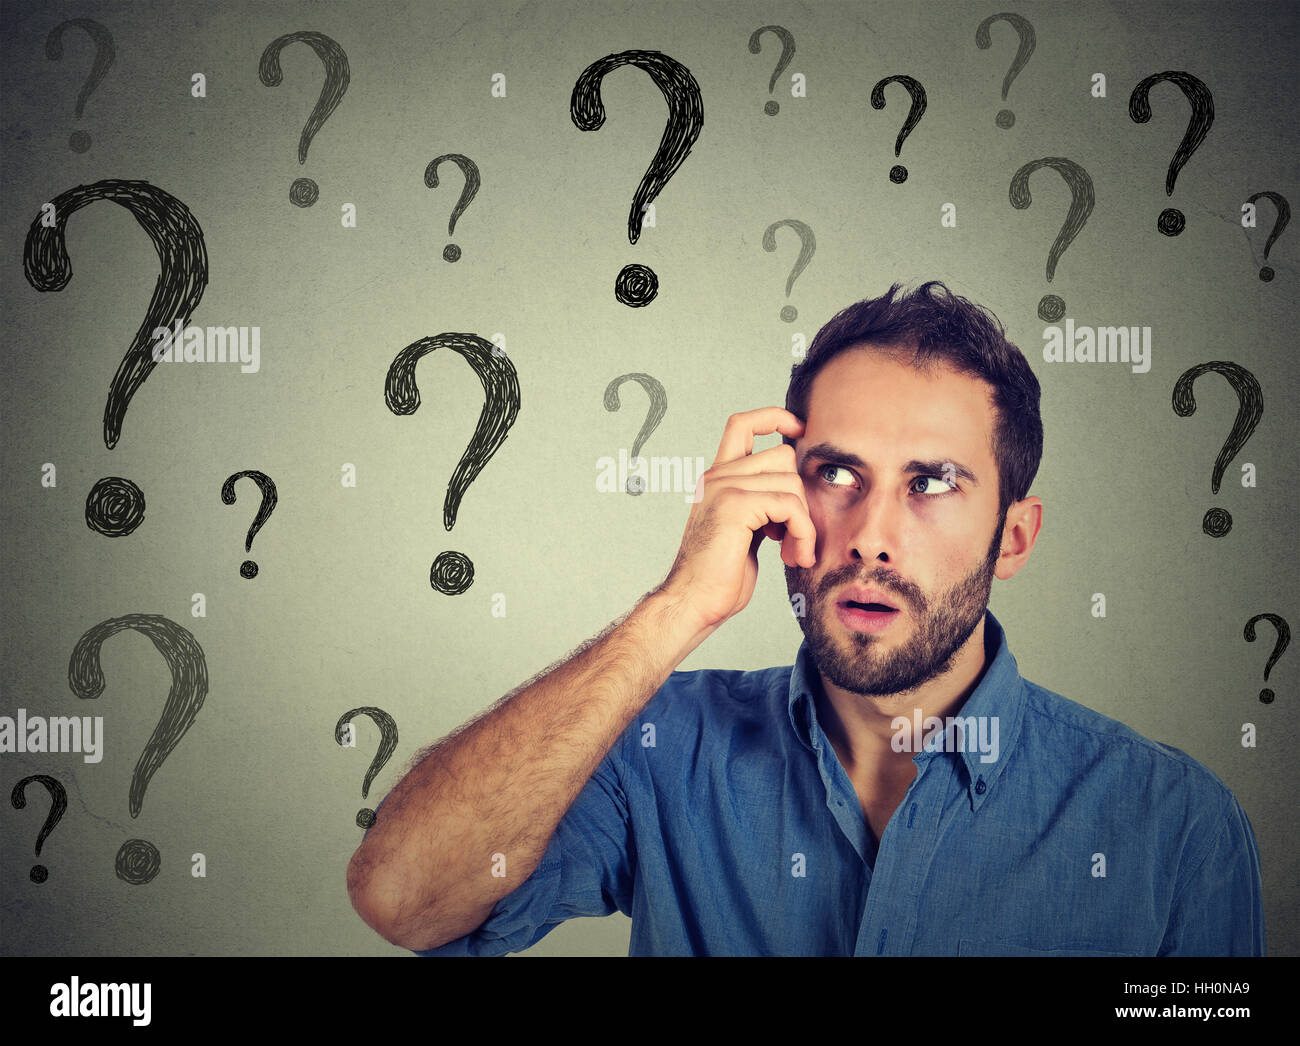 Thoughtful confused handsome man has too many questions and no answer - Stock Image